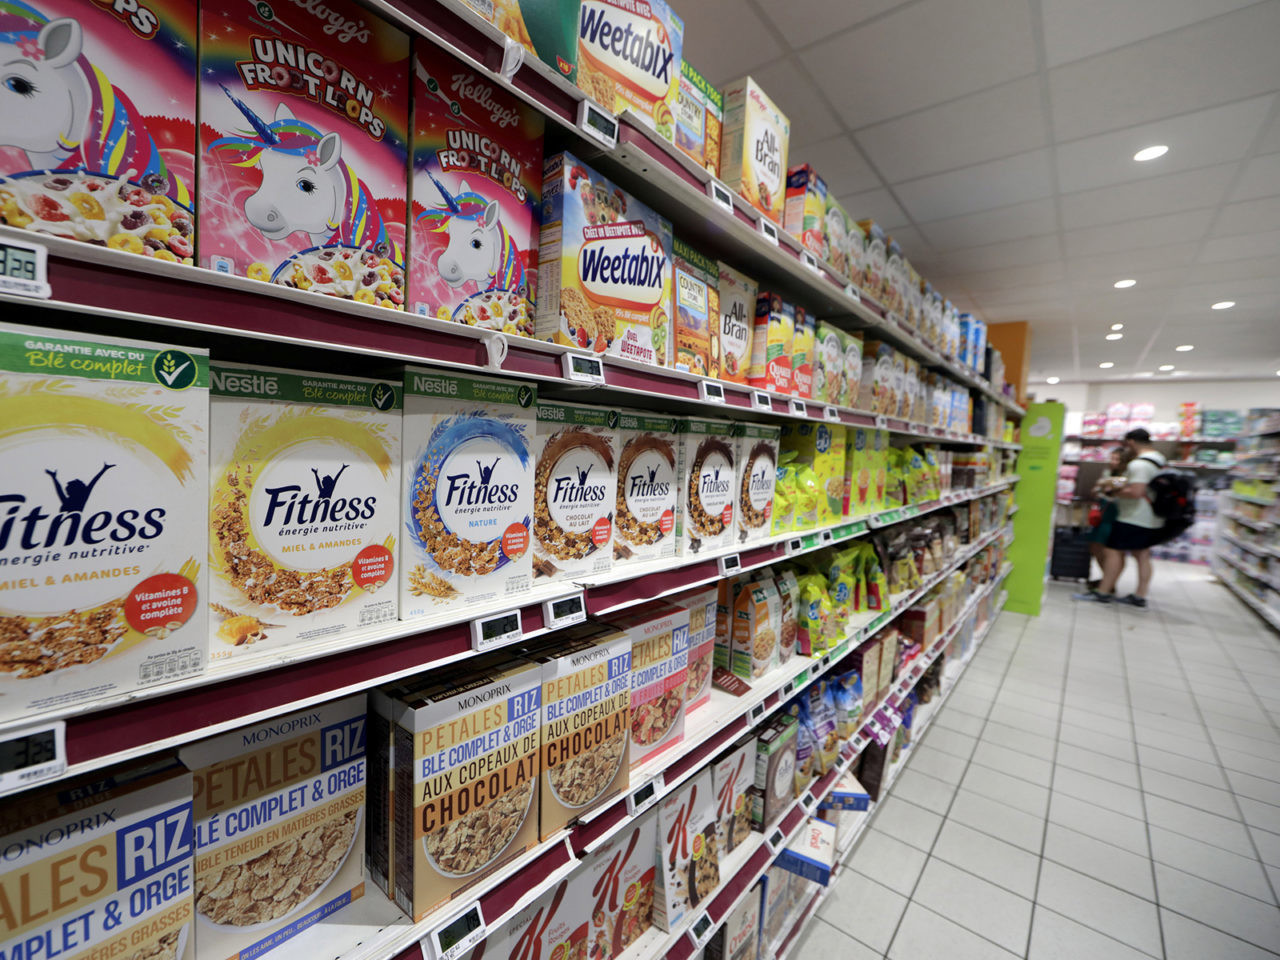 FILE PHOTO: Breakfast foods are displayed on shelves in a supermarket in Nice, France, July 18, 2018.  REUTERS/Eric Gaillard/File Photo